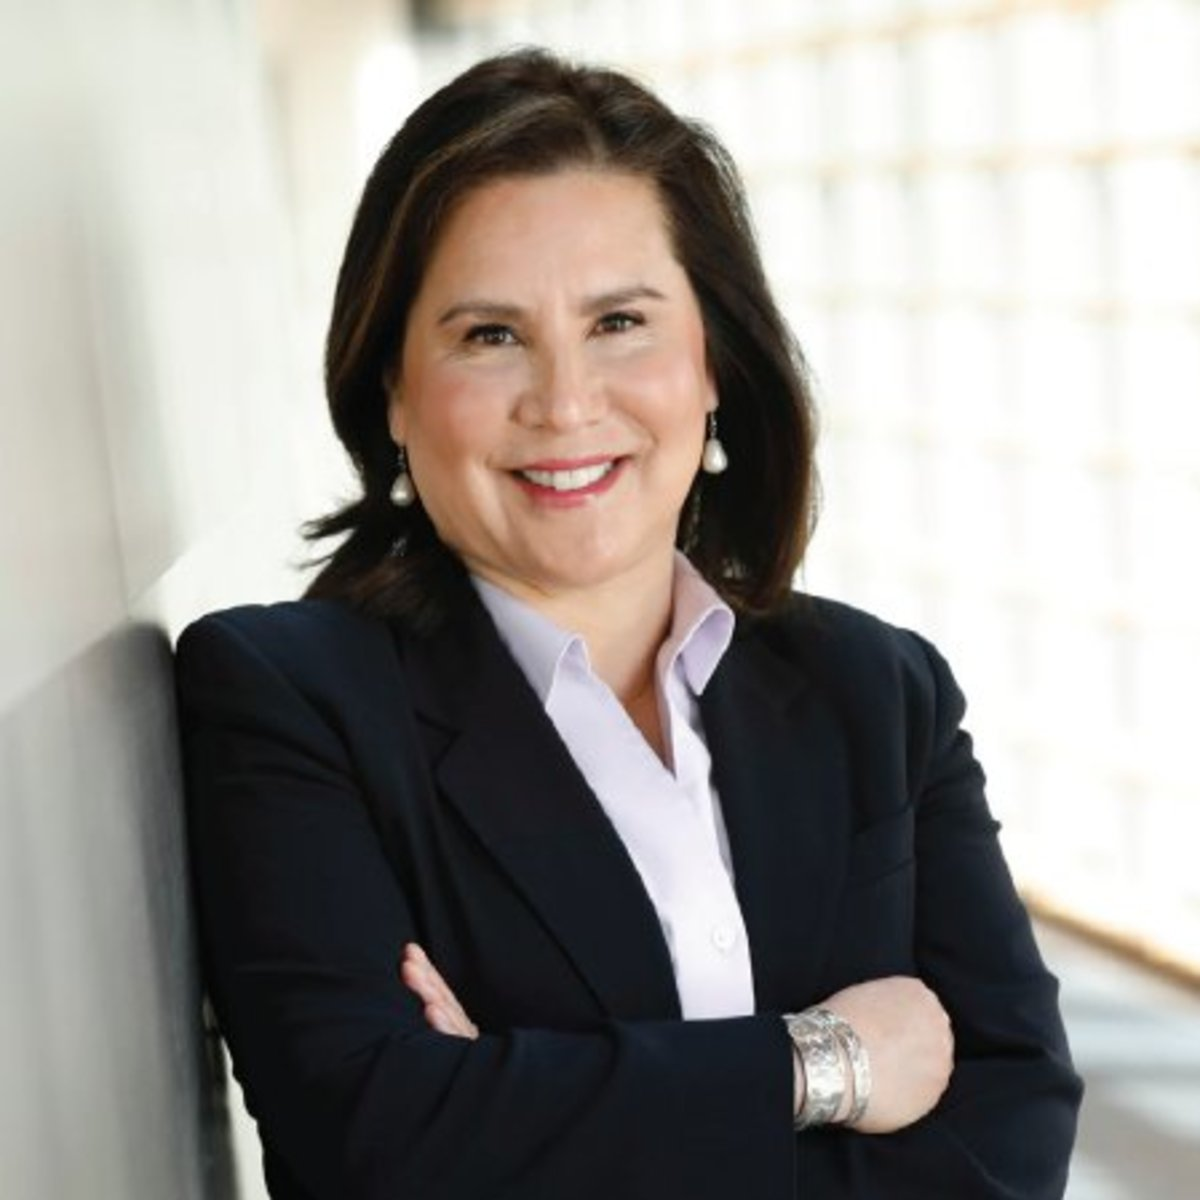 Debora Juarez, Blackfeet, is running for re-election to the Seattle City Council. (Seattle.gov photo)